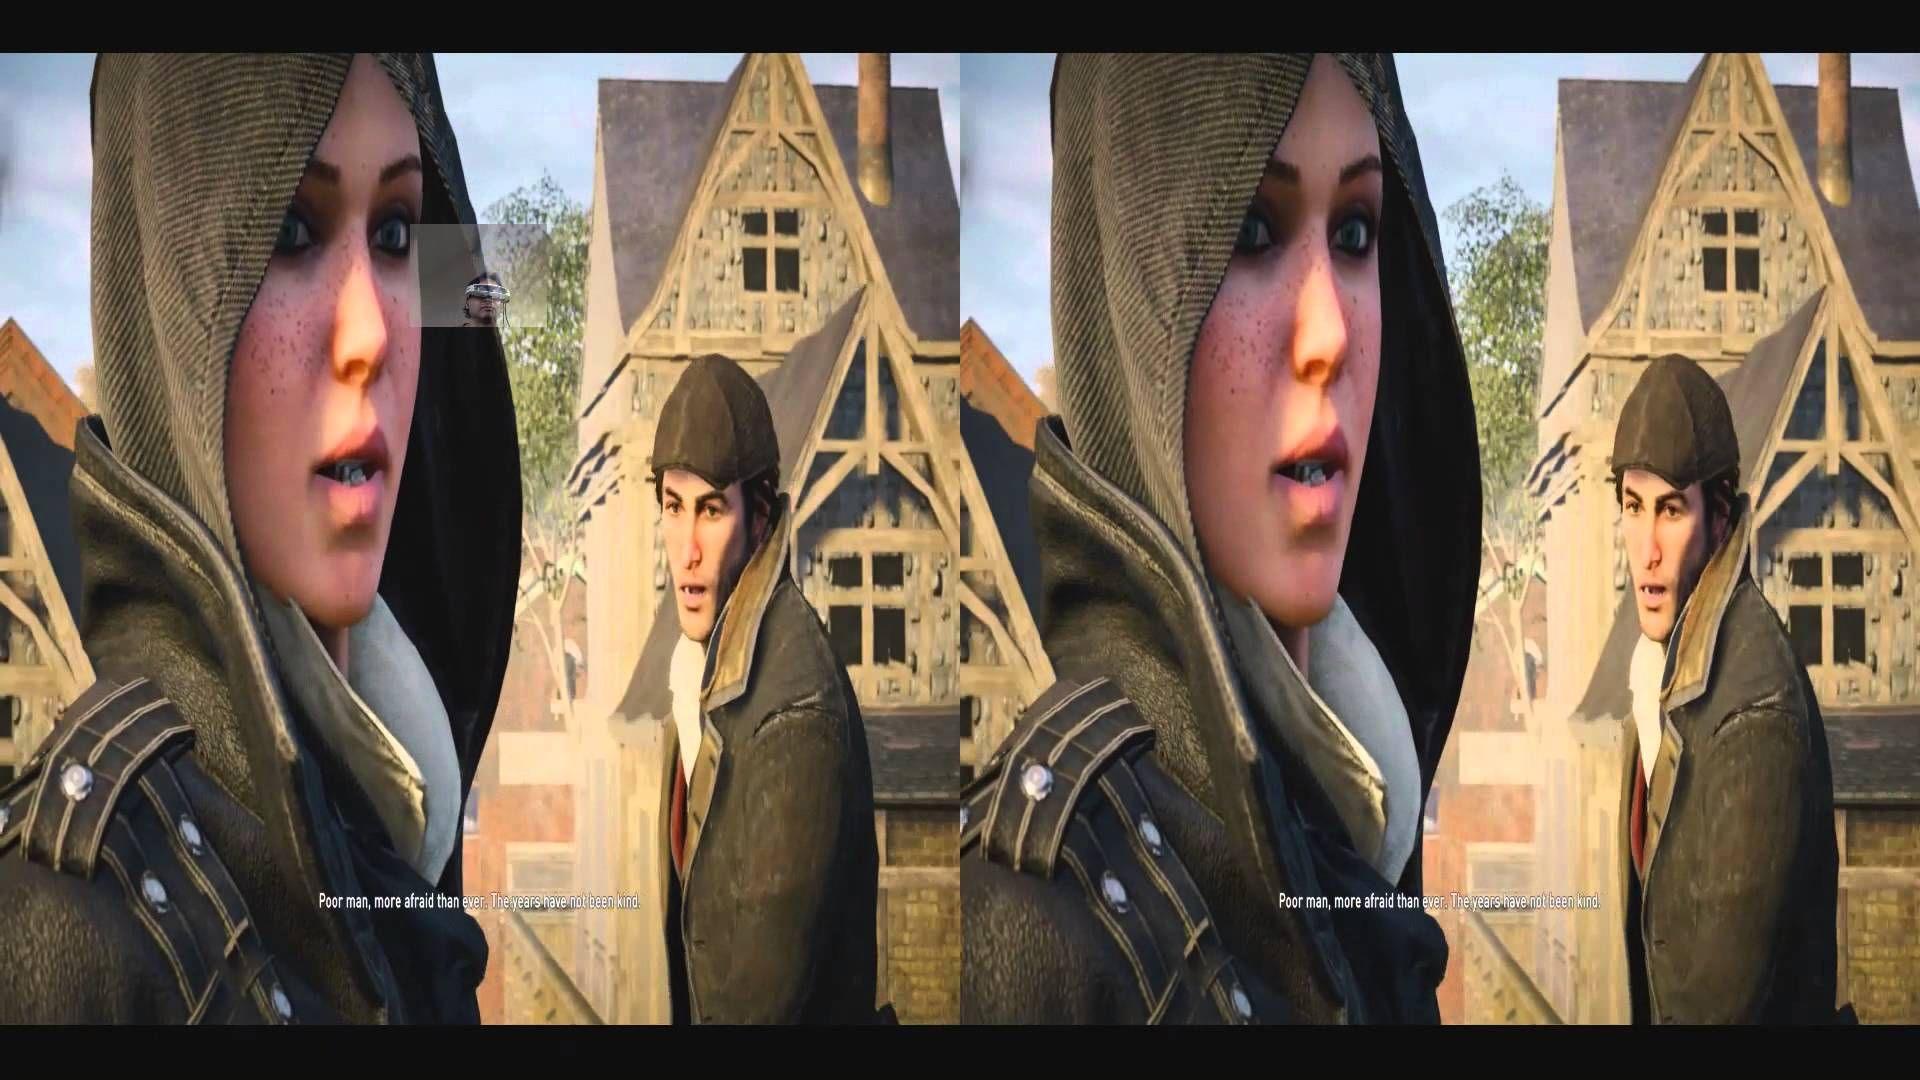 assassin s creed syndicate vr pc 1080p sbs tridef 3d st1080 hmd